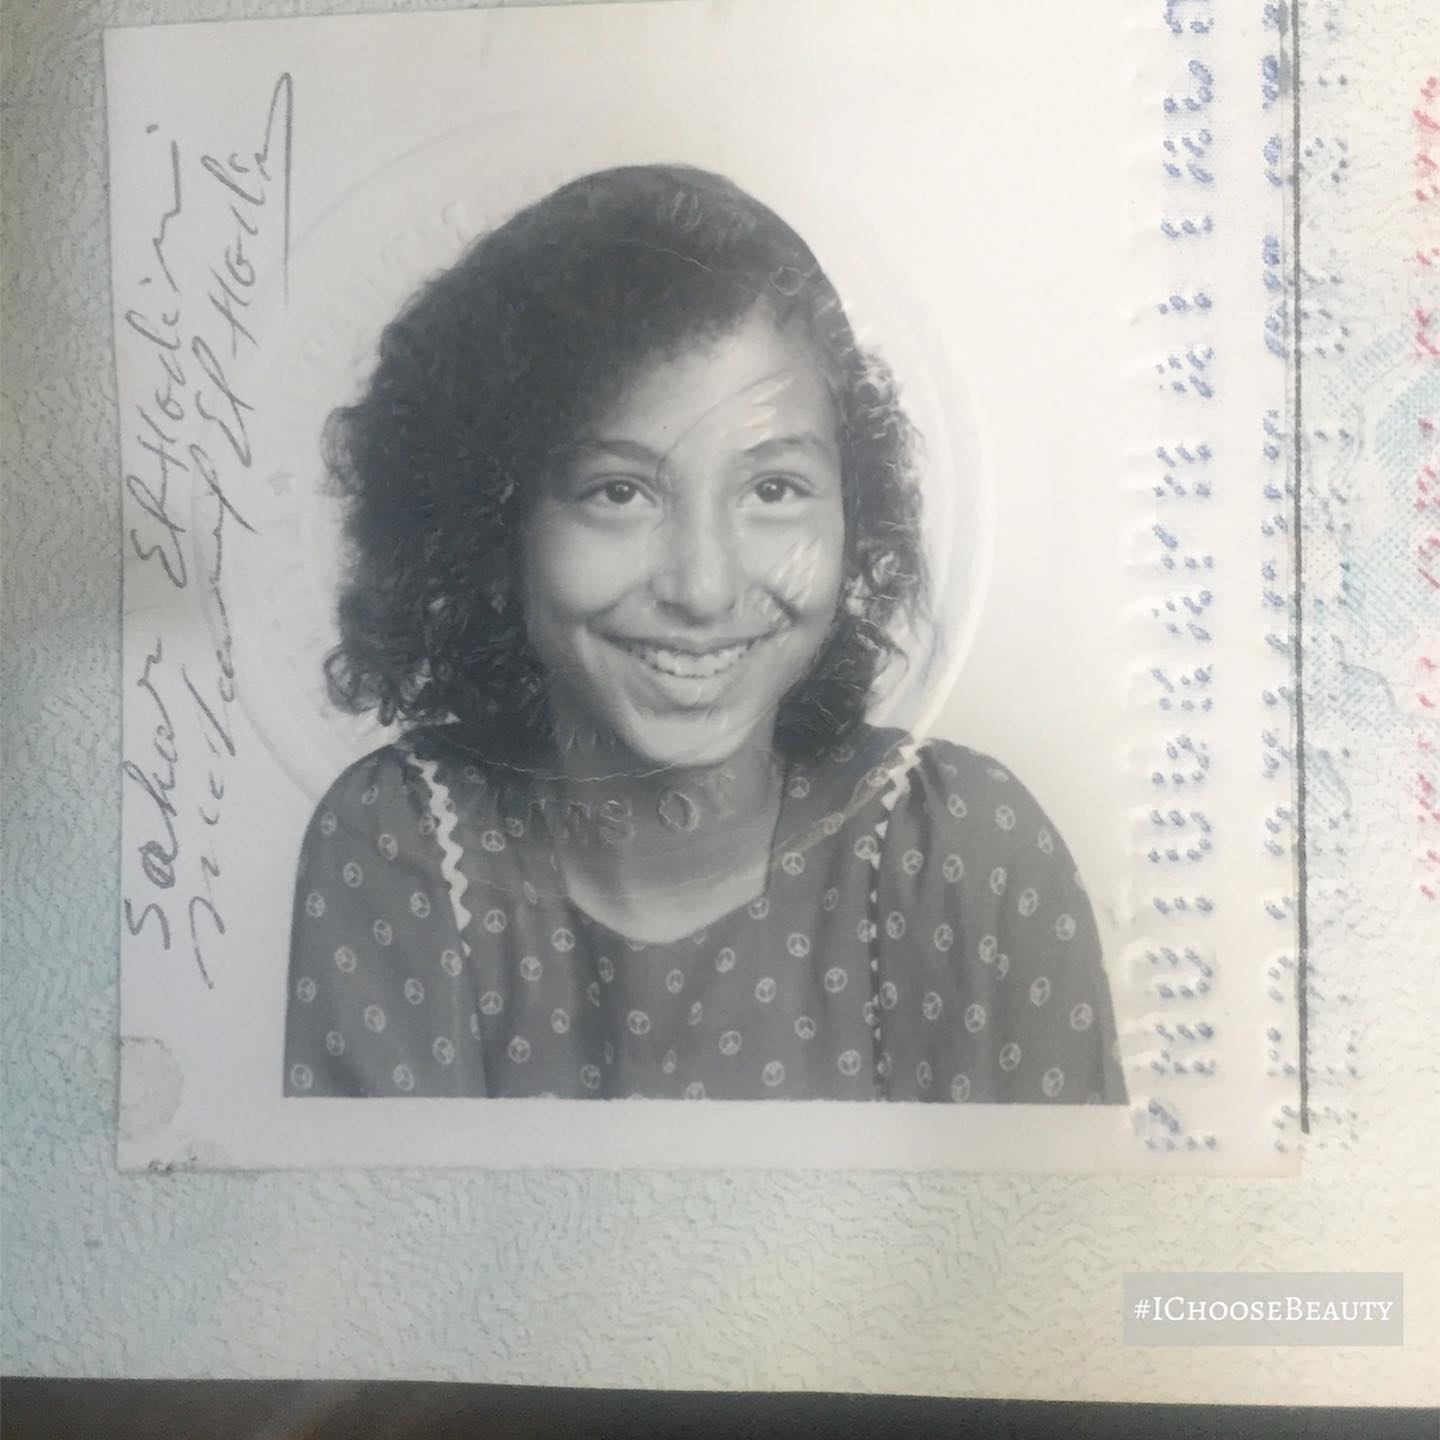 Found this gem as I was decluttering my dad's house. ️ We traveled abroad a lot when we were kids; the stamp in 1977 is from the time we went to live in Algeria for a year. #preciousmemories #ichoosebeauty Day 2764